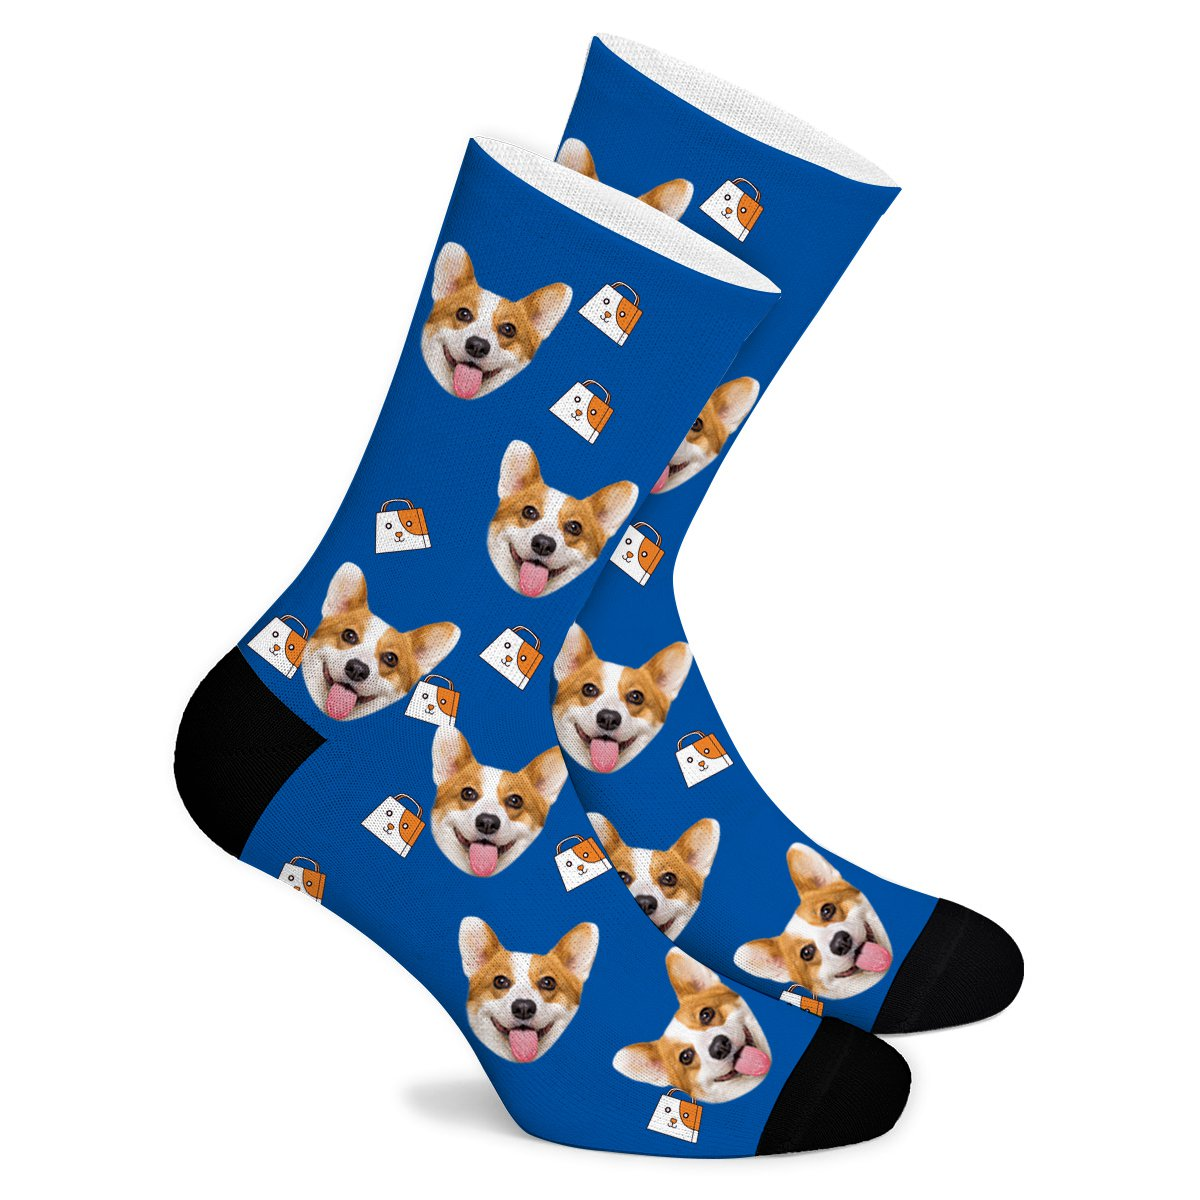 Cartoon Shopping Bag Custom Socks - Make Face Socks